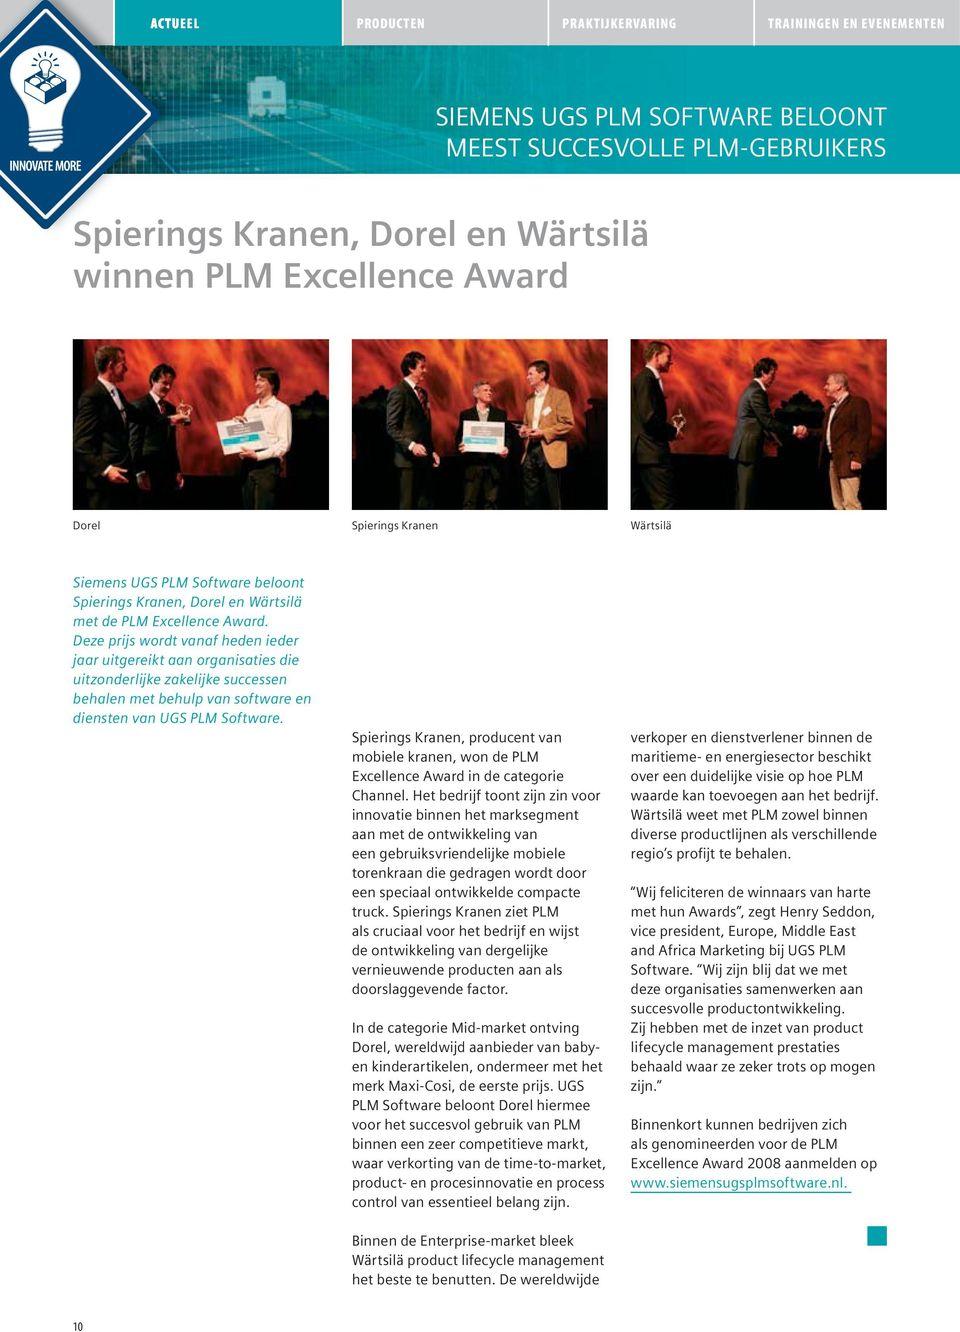 Spierings Kranen, producent van mobiele kranen, won de PLM ExcellenceAwardindecategorie Channel.